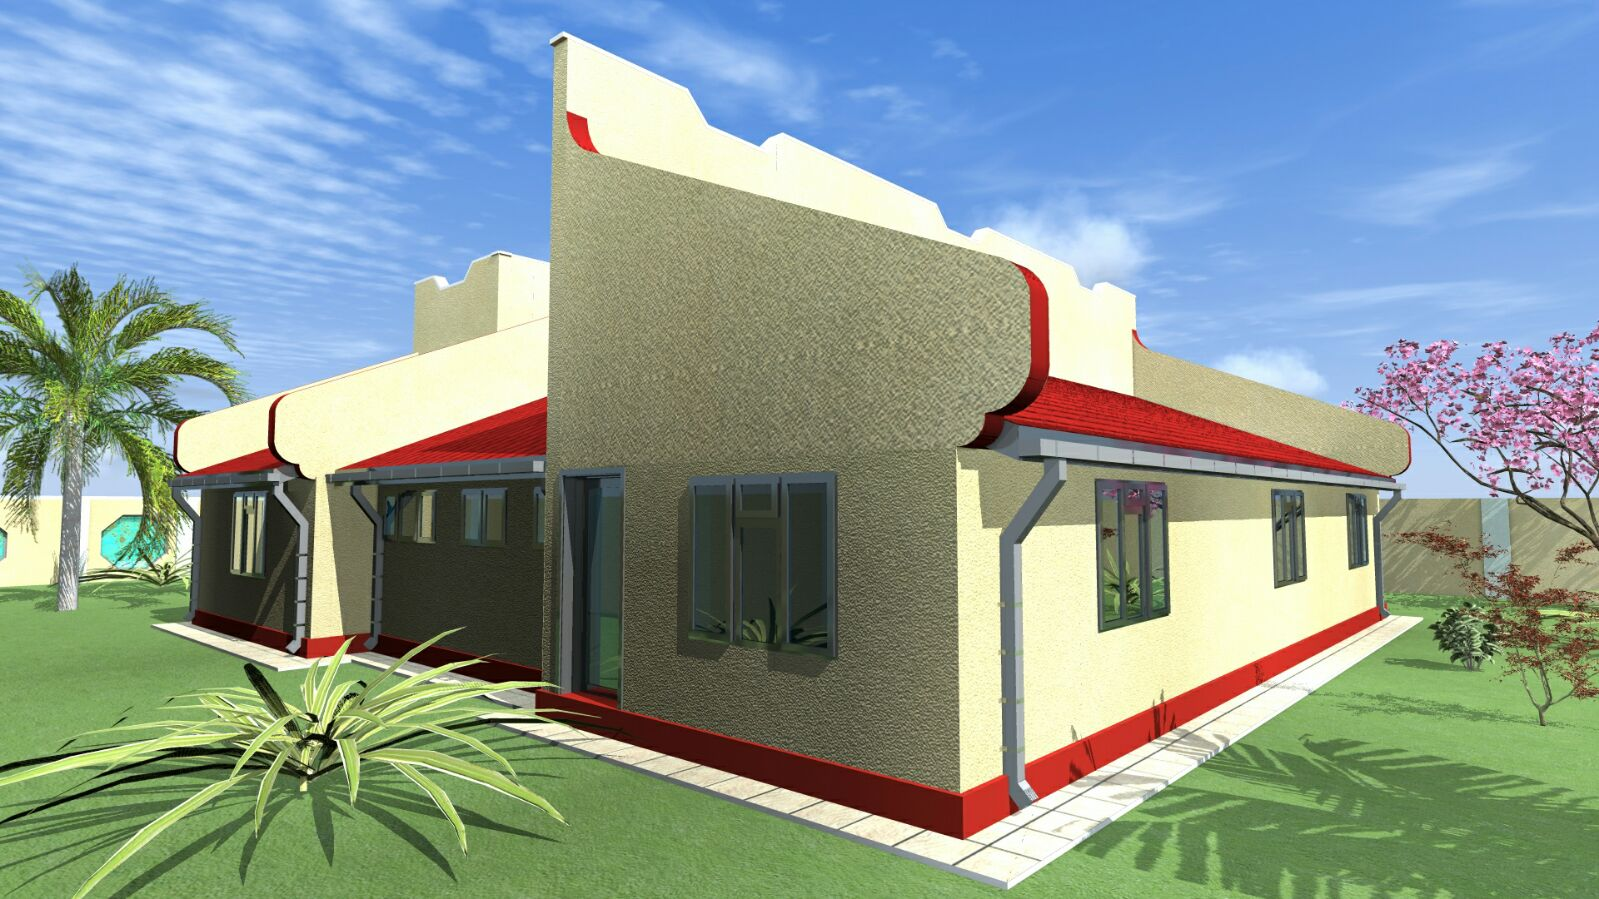 IMG 20150921 WA0003 - 36+ Modern House Parapet Wall Design For Small House PNG